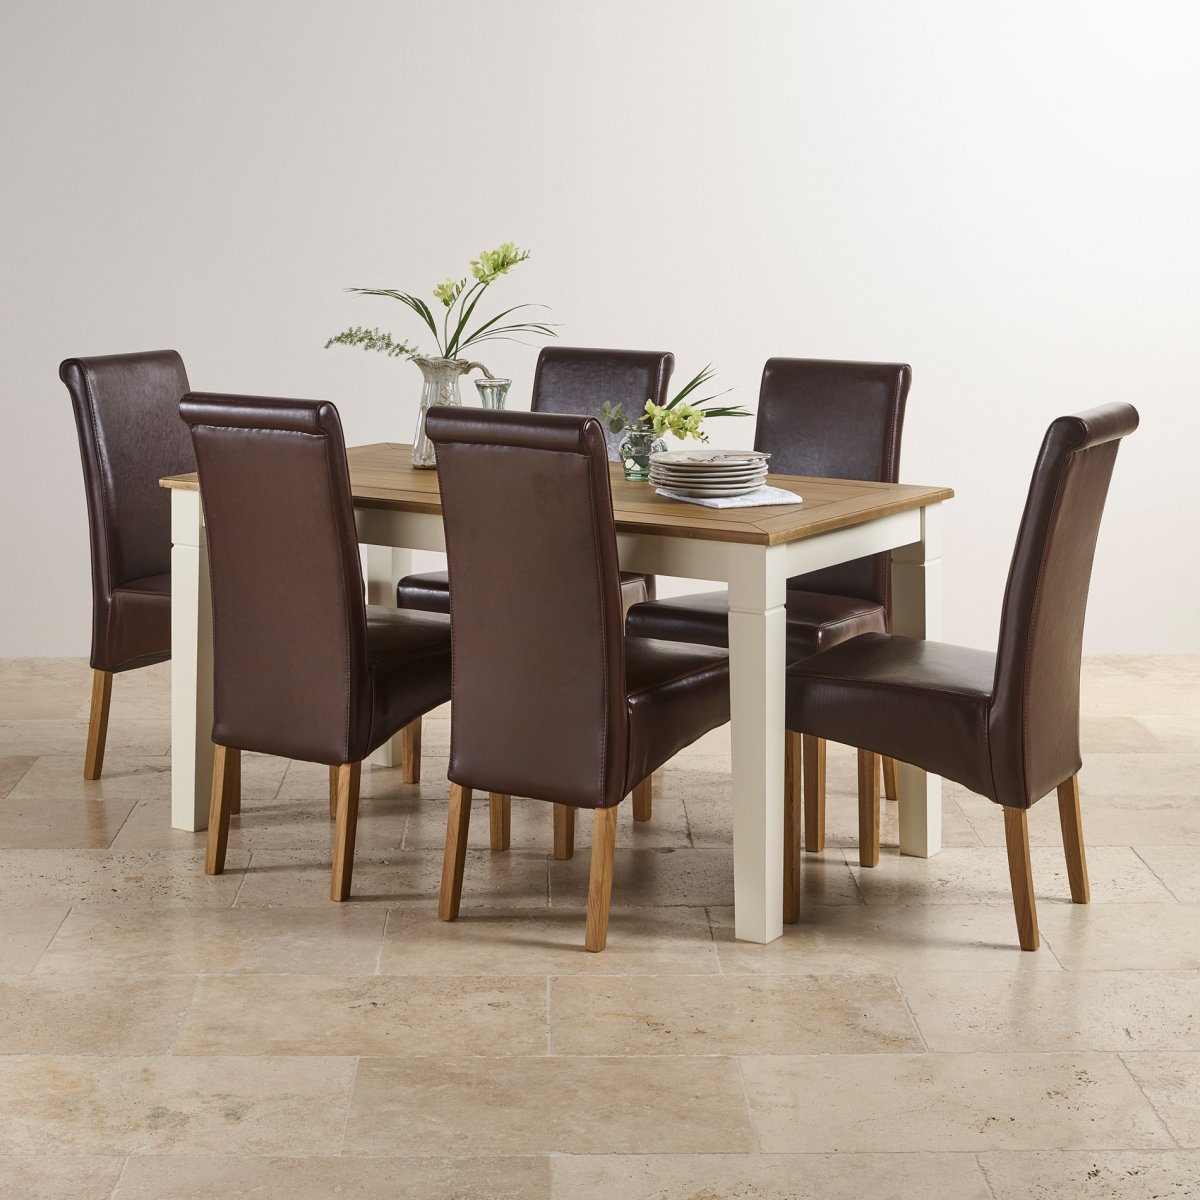 Painted Dining Room Sets: Shutter Cream Painted 5ft Dining Set With 6 Brown Leather